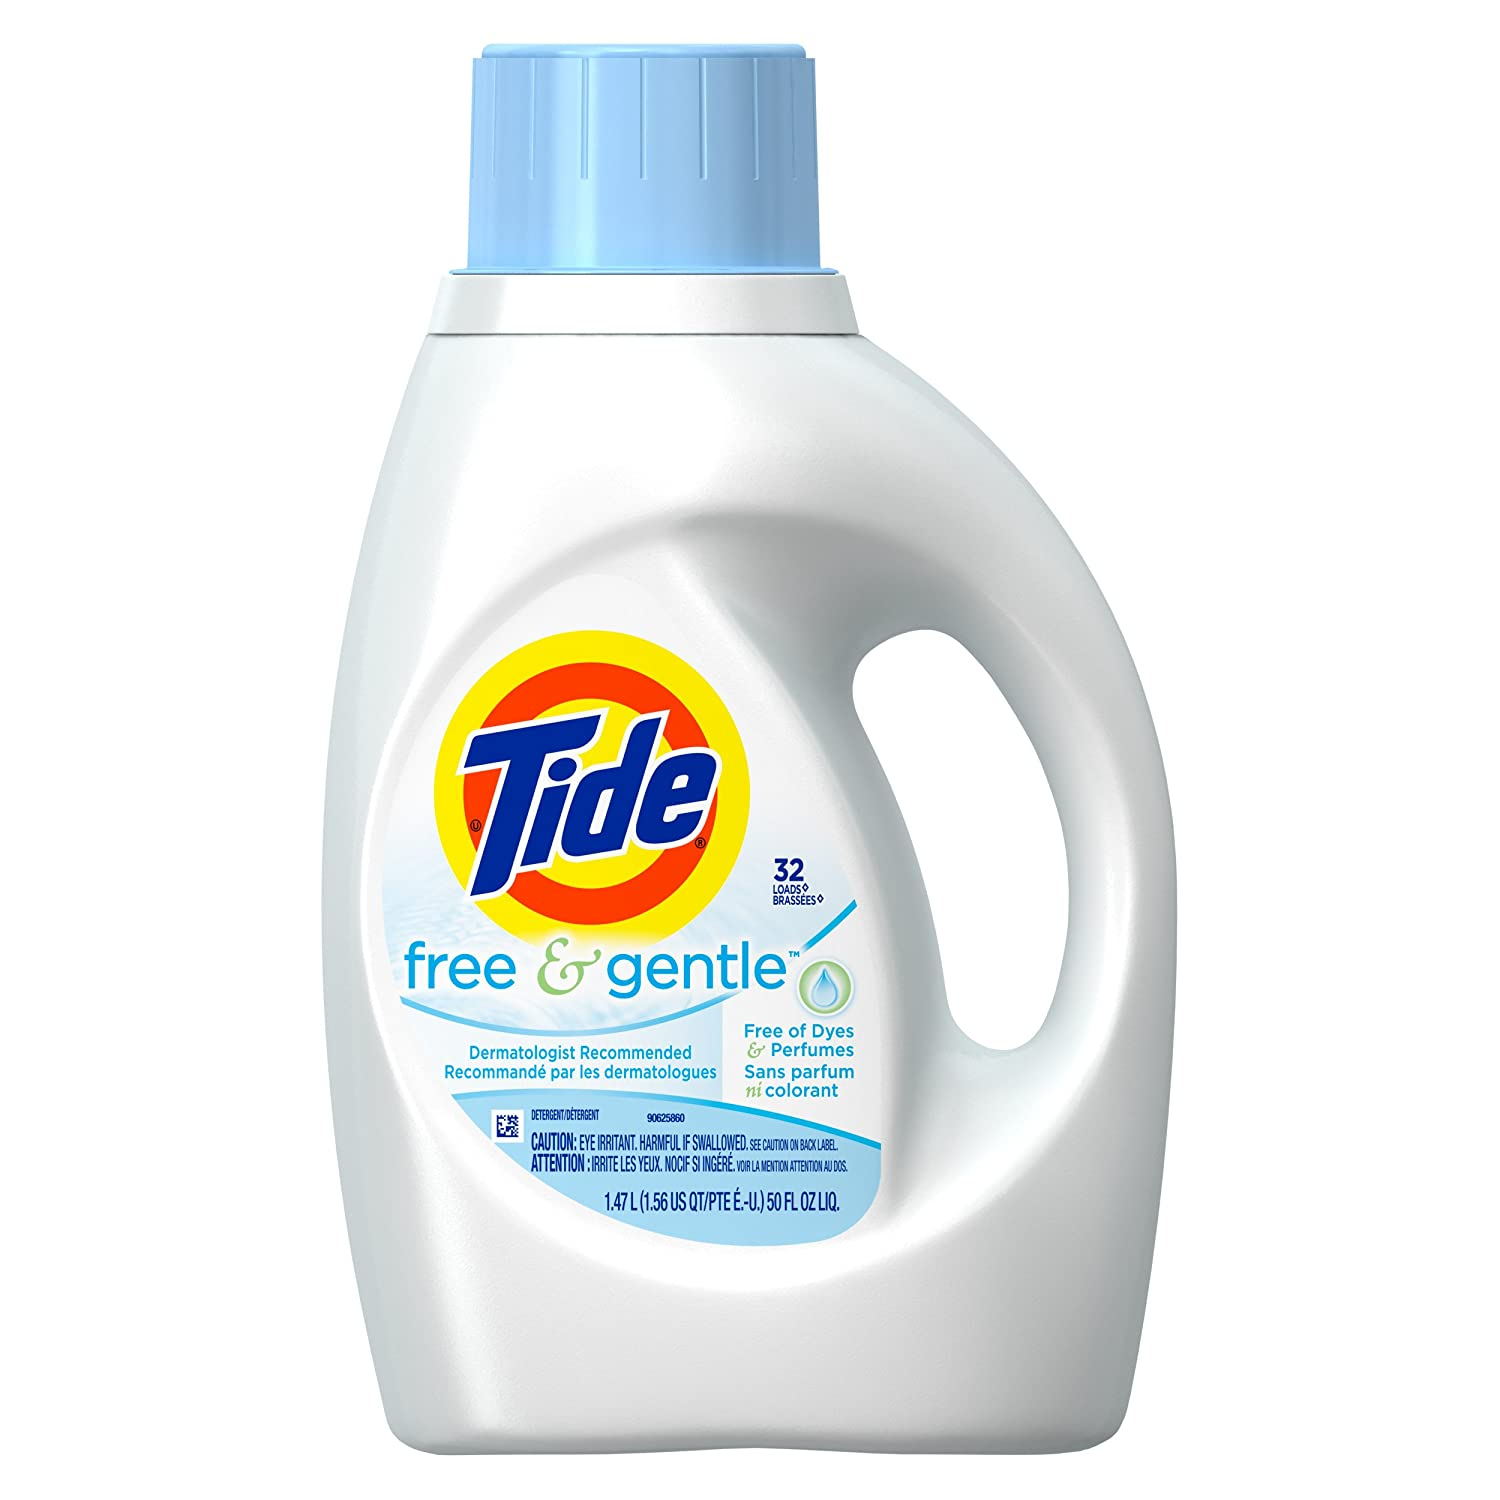 Image result for tide gentle and free